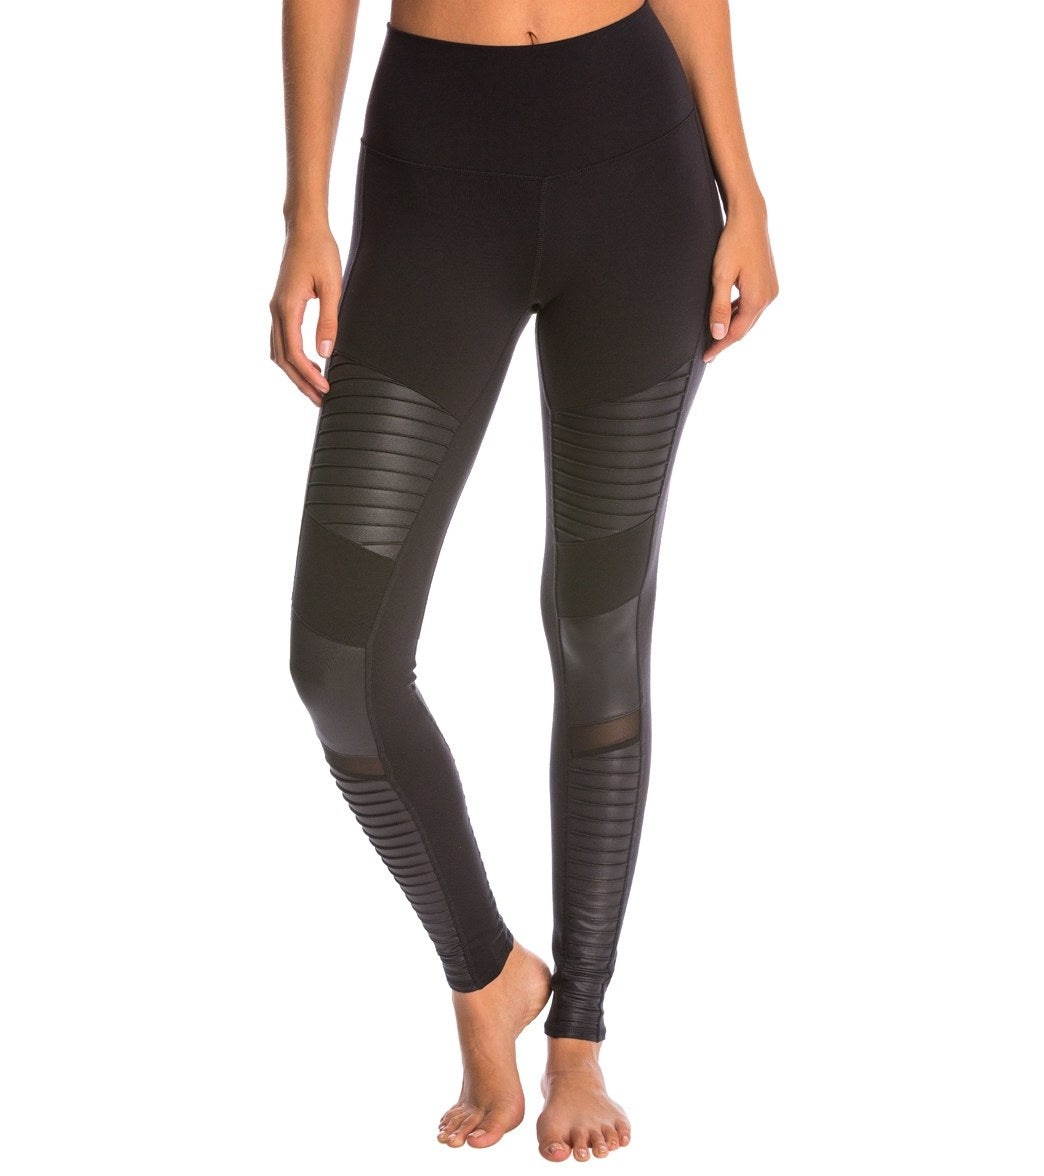 8534c1c2985762 Alo Yoga High Waist Moto Yoga Leggings at YogaOutlet.com - Free Shipping